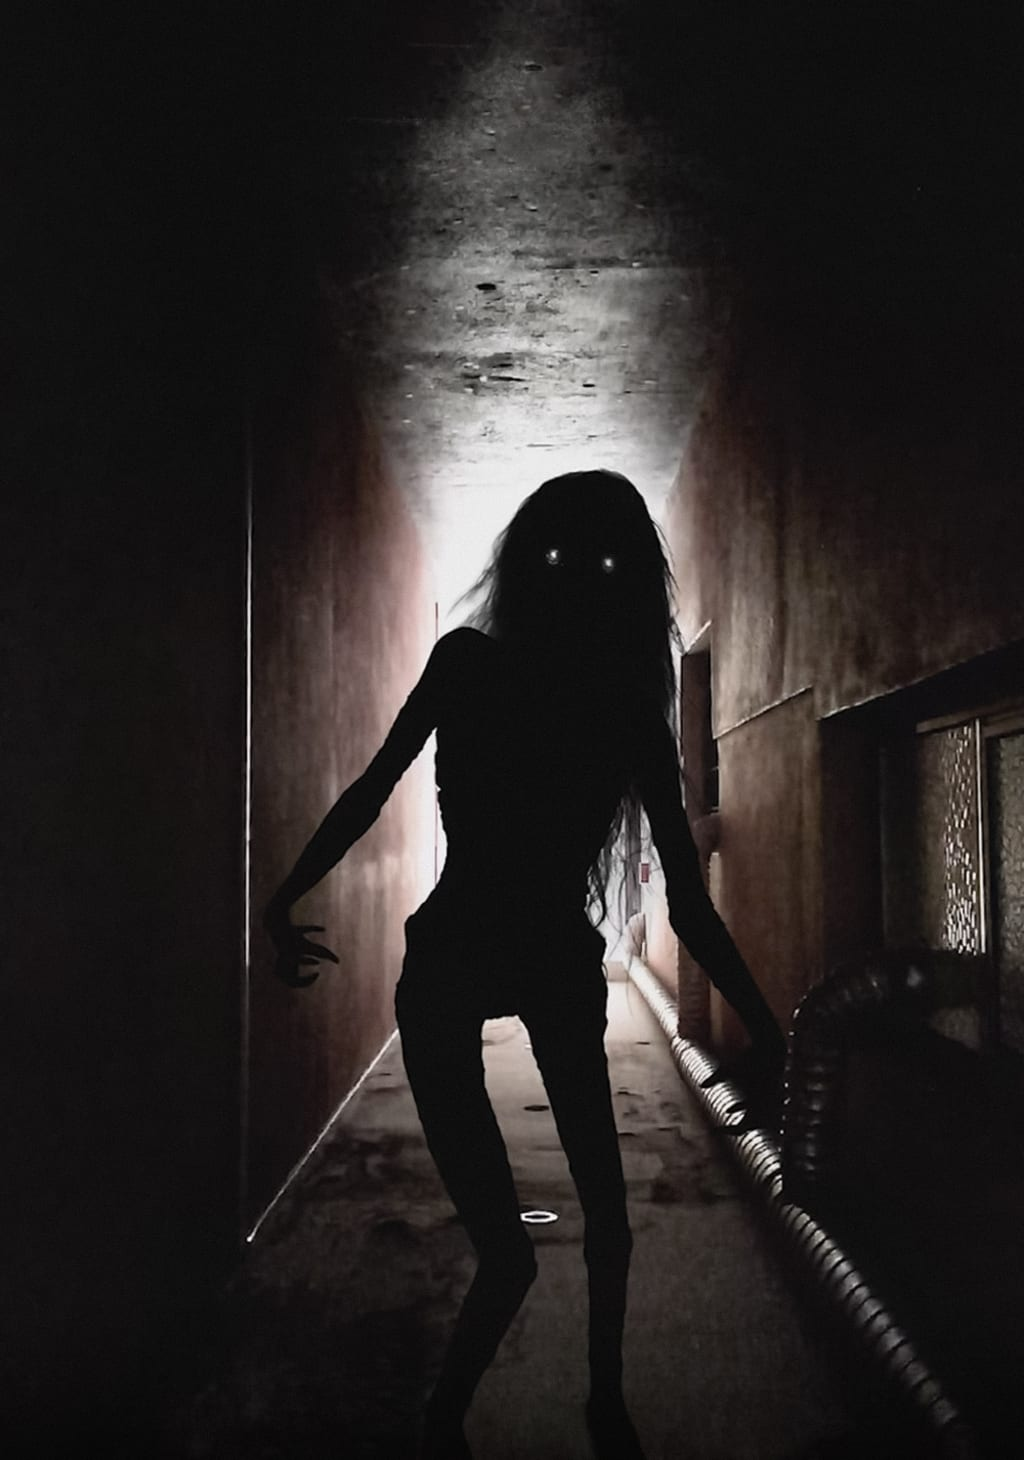 Diana from 'Lights Out'